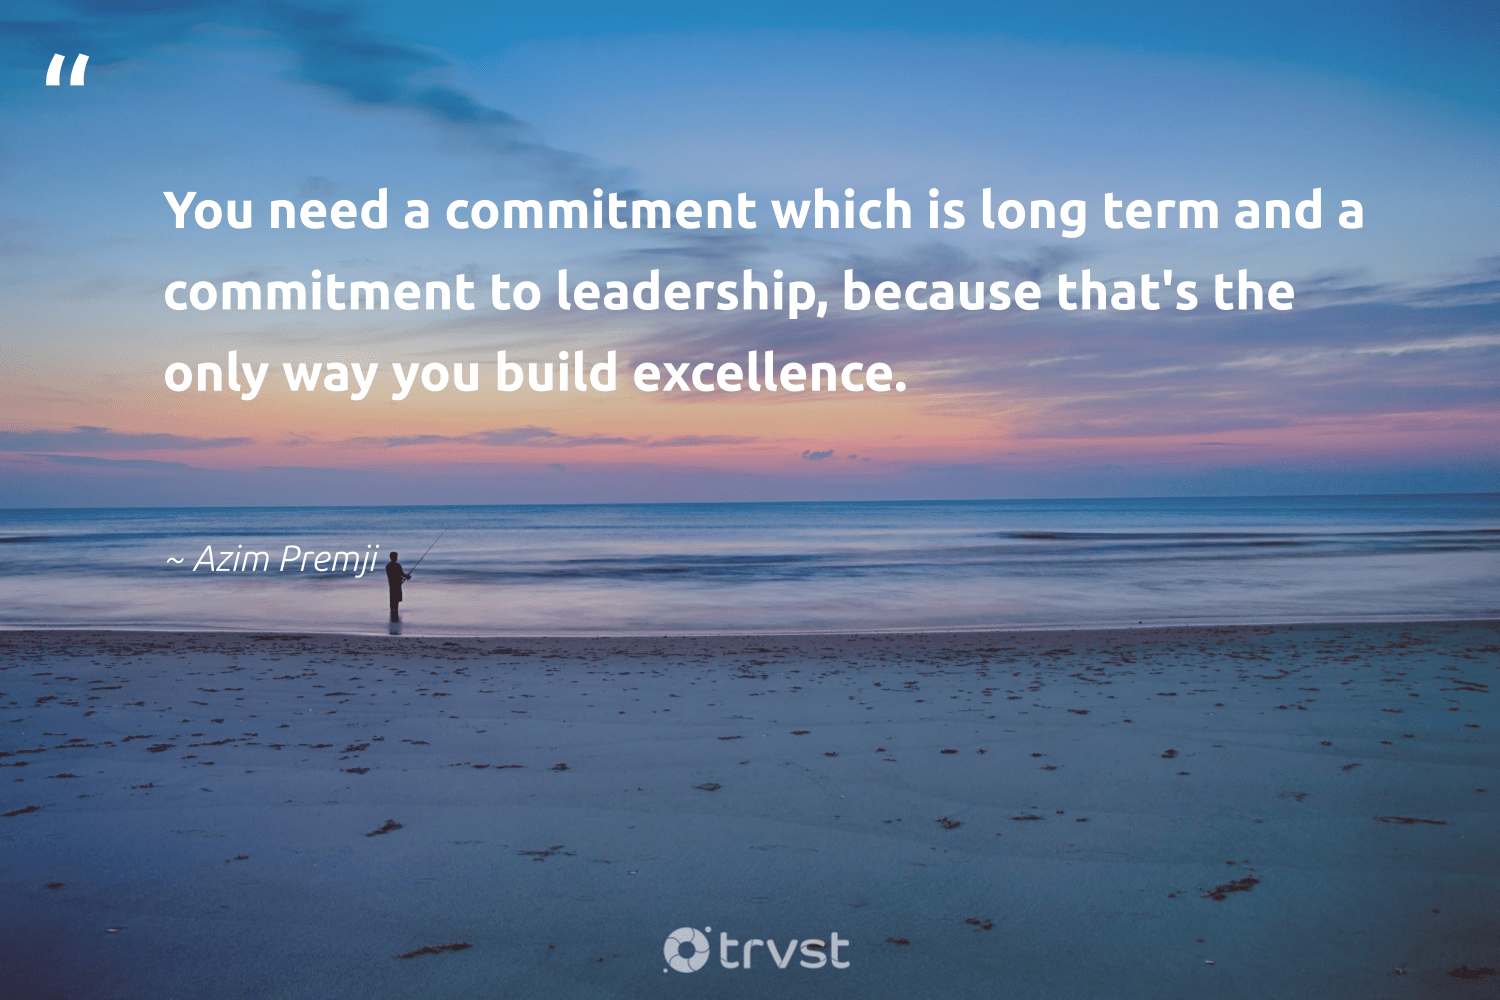 """You need a commitment which is long term and a commitment to leadership, because that's the only way you build excellence.""  - Azim Premji #trvst #quotes #leadership #leadershipdevelopment #futureofwork #begreat #beinspired #leadershipskills #nevergiveup #softskills #dotherightthing #leadershipqualities"